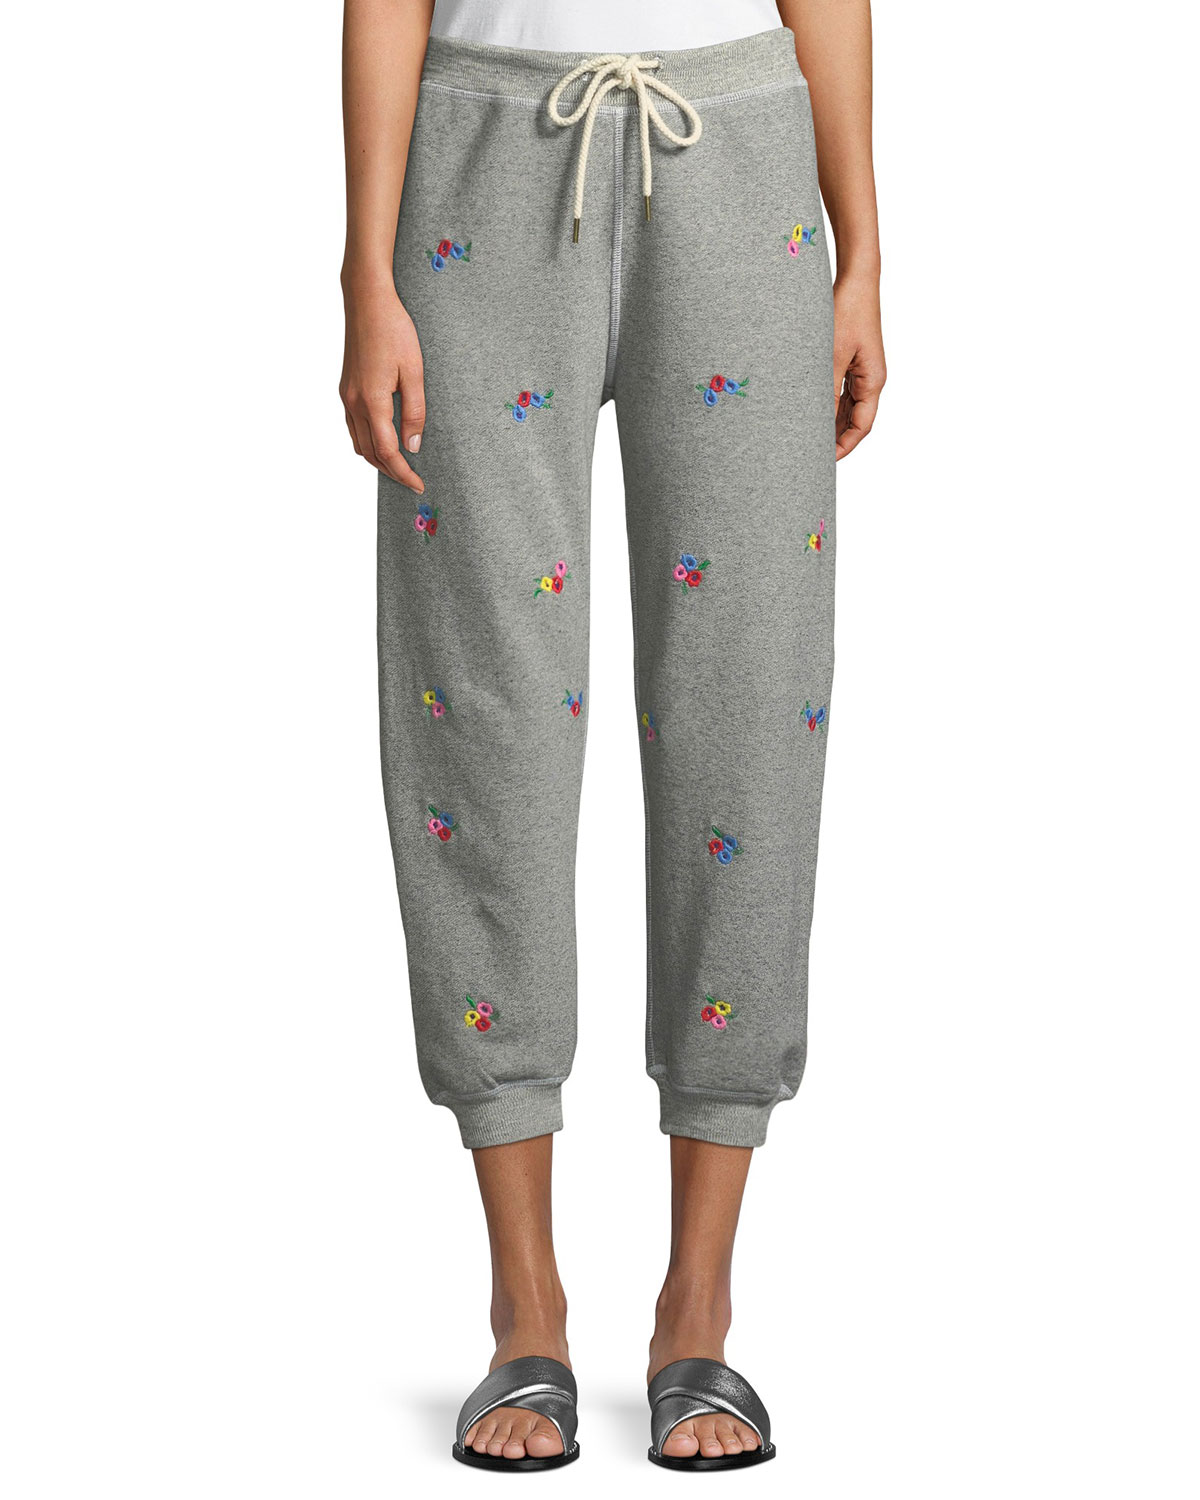 outlet boutique exceptional range of styles latest The Cropped Floral-Embroidered Sweatpants